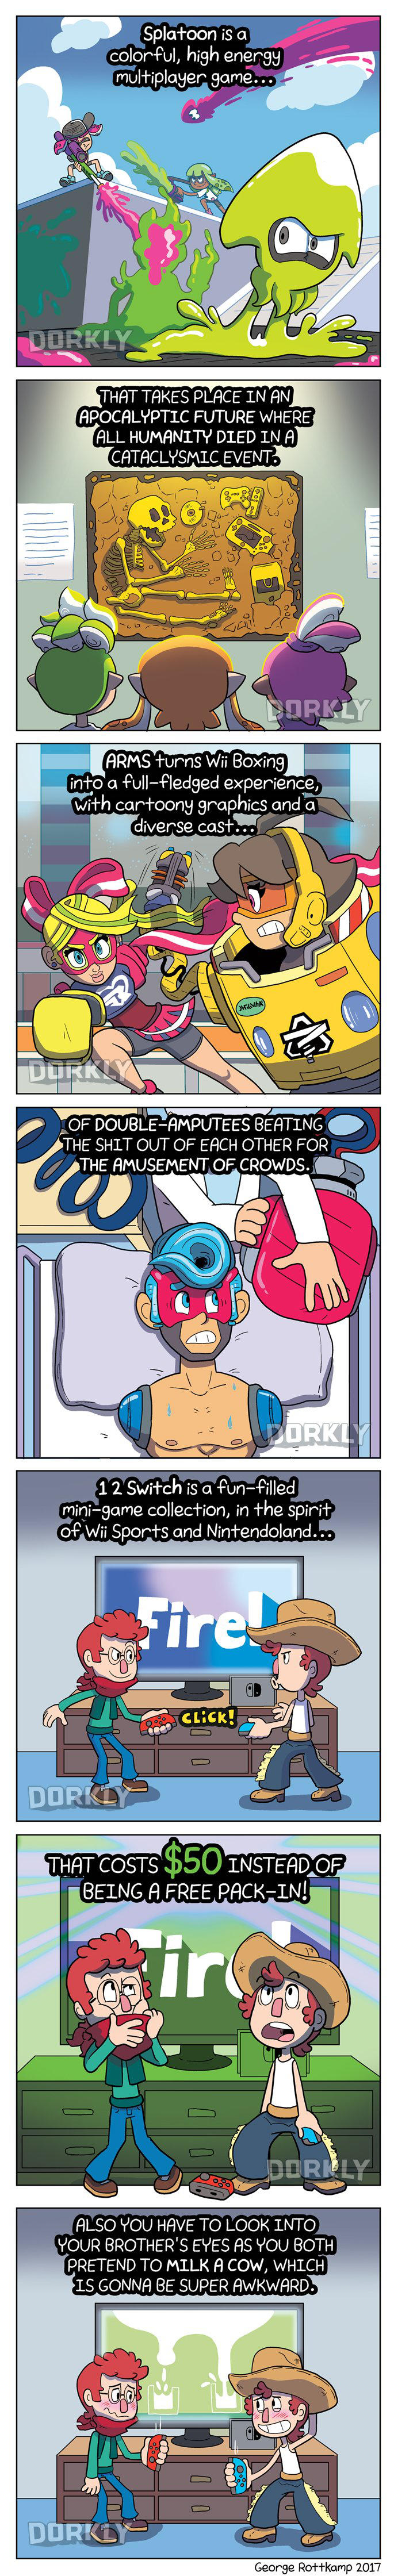 DORKLY: Nintendo's Franchises Are Getting Dark by GeorgeRottkamp